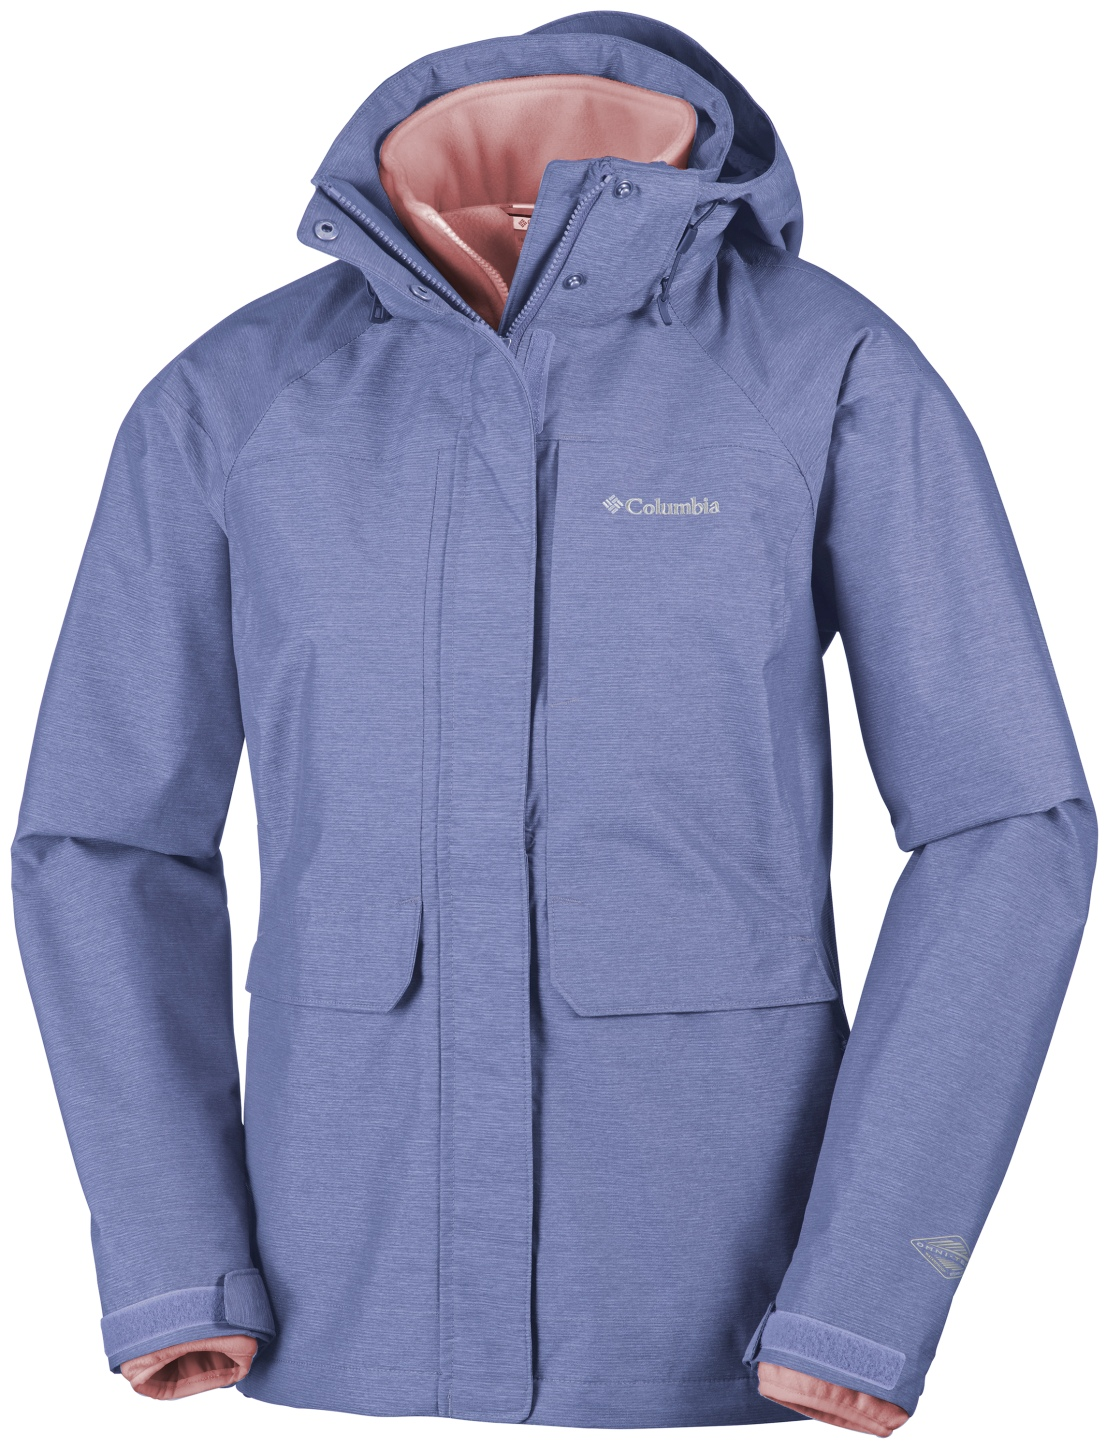 Columbia Women's Mystic Pines Interchange Ski Jacket Bluebell Cross Dye-30